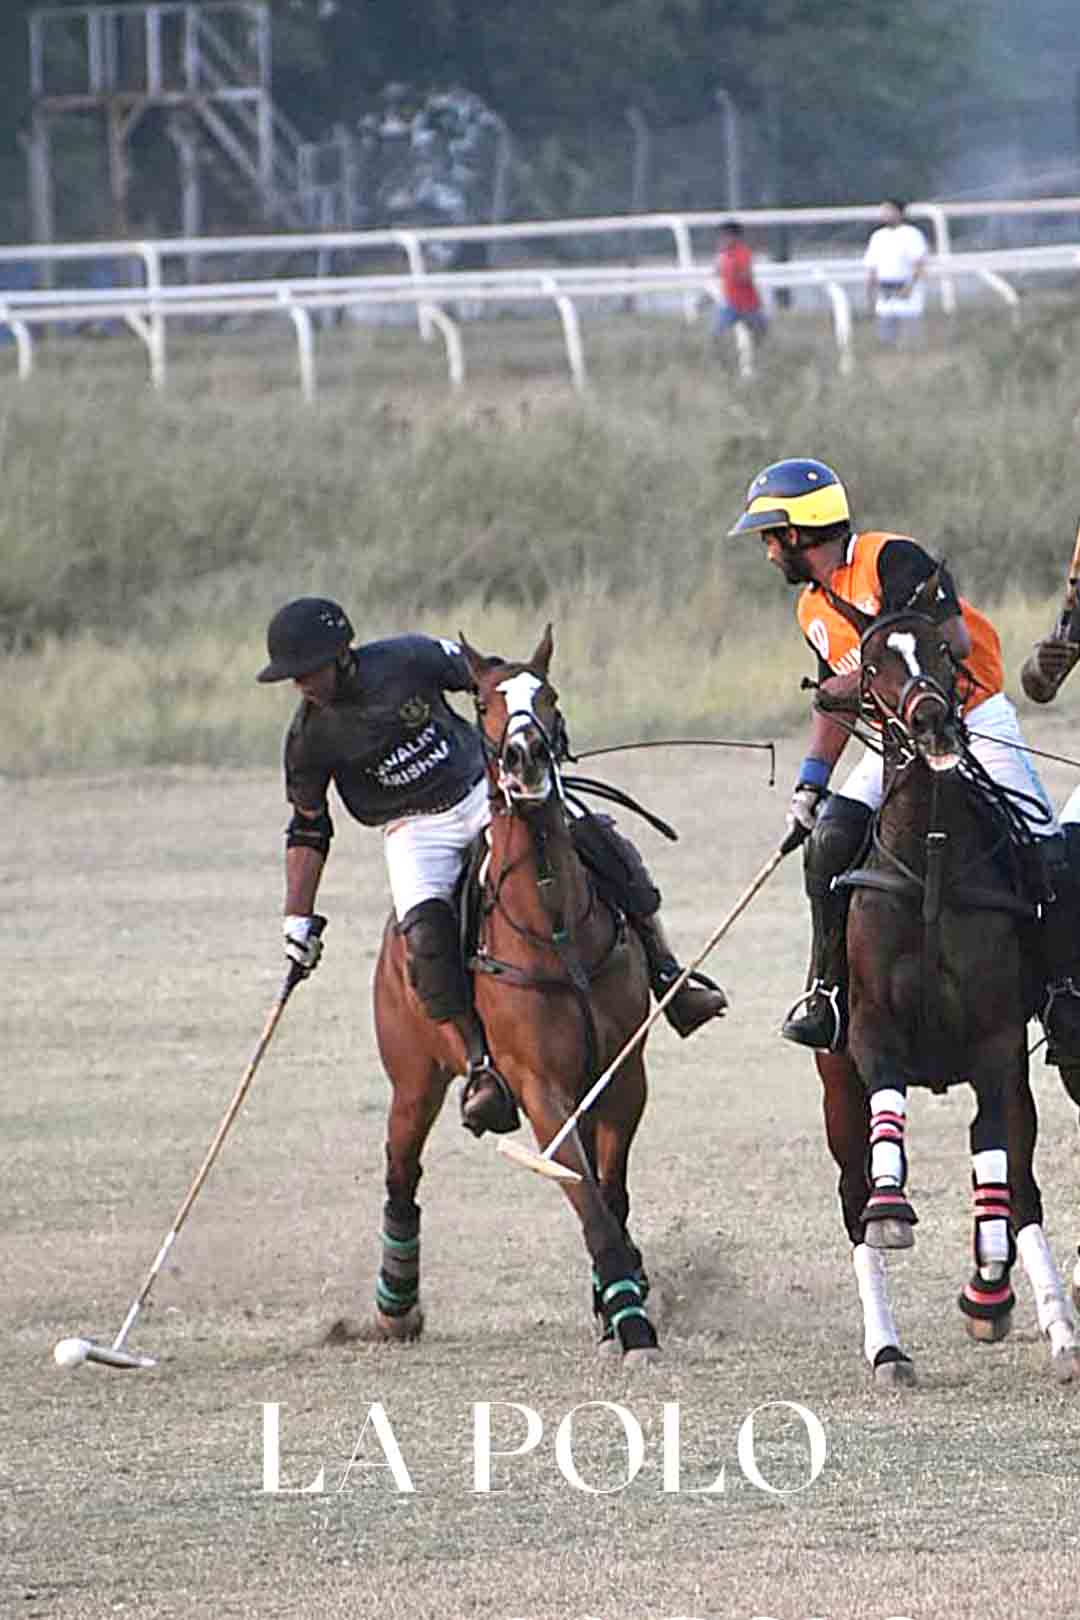 Southern command polo cup | Siddhant sharma